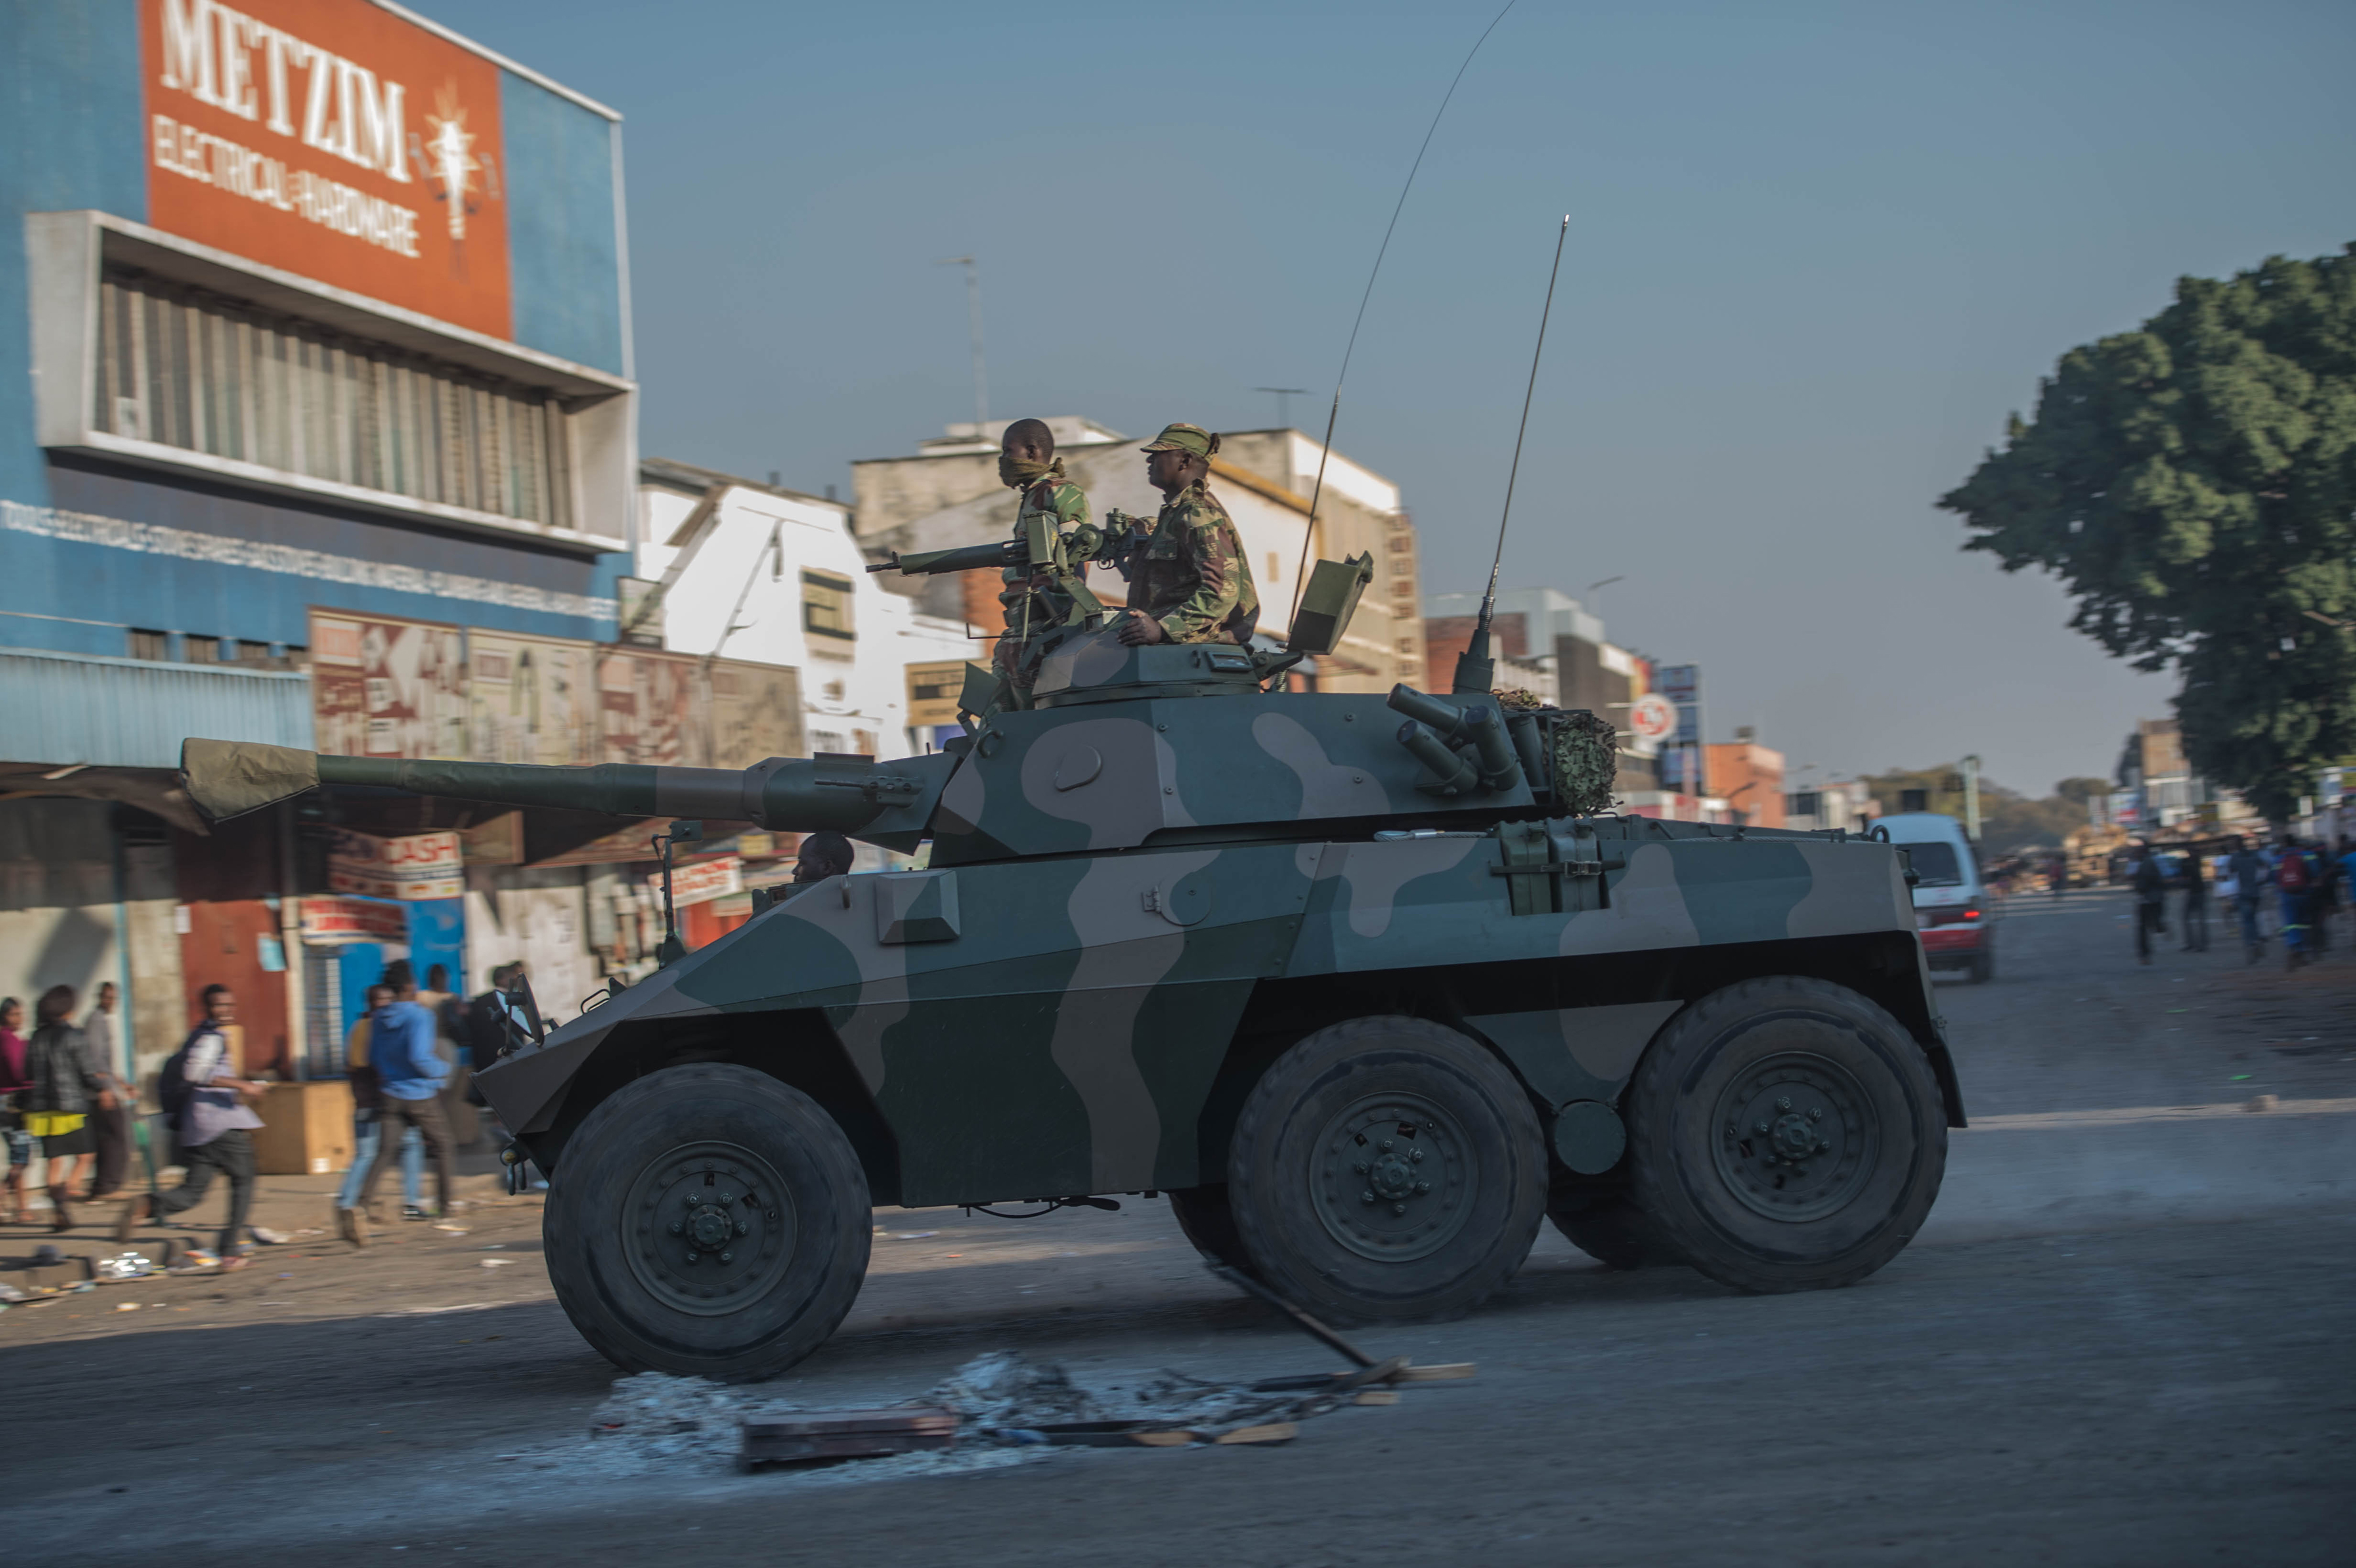 Photo of unrest during Zimbabwean elections